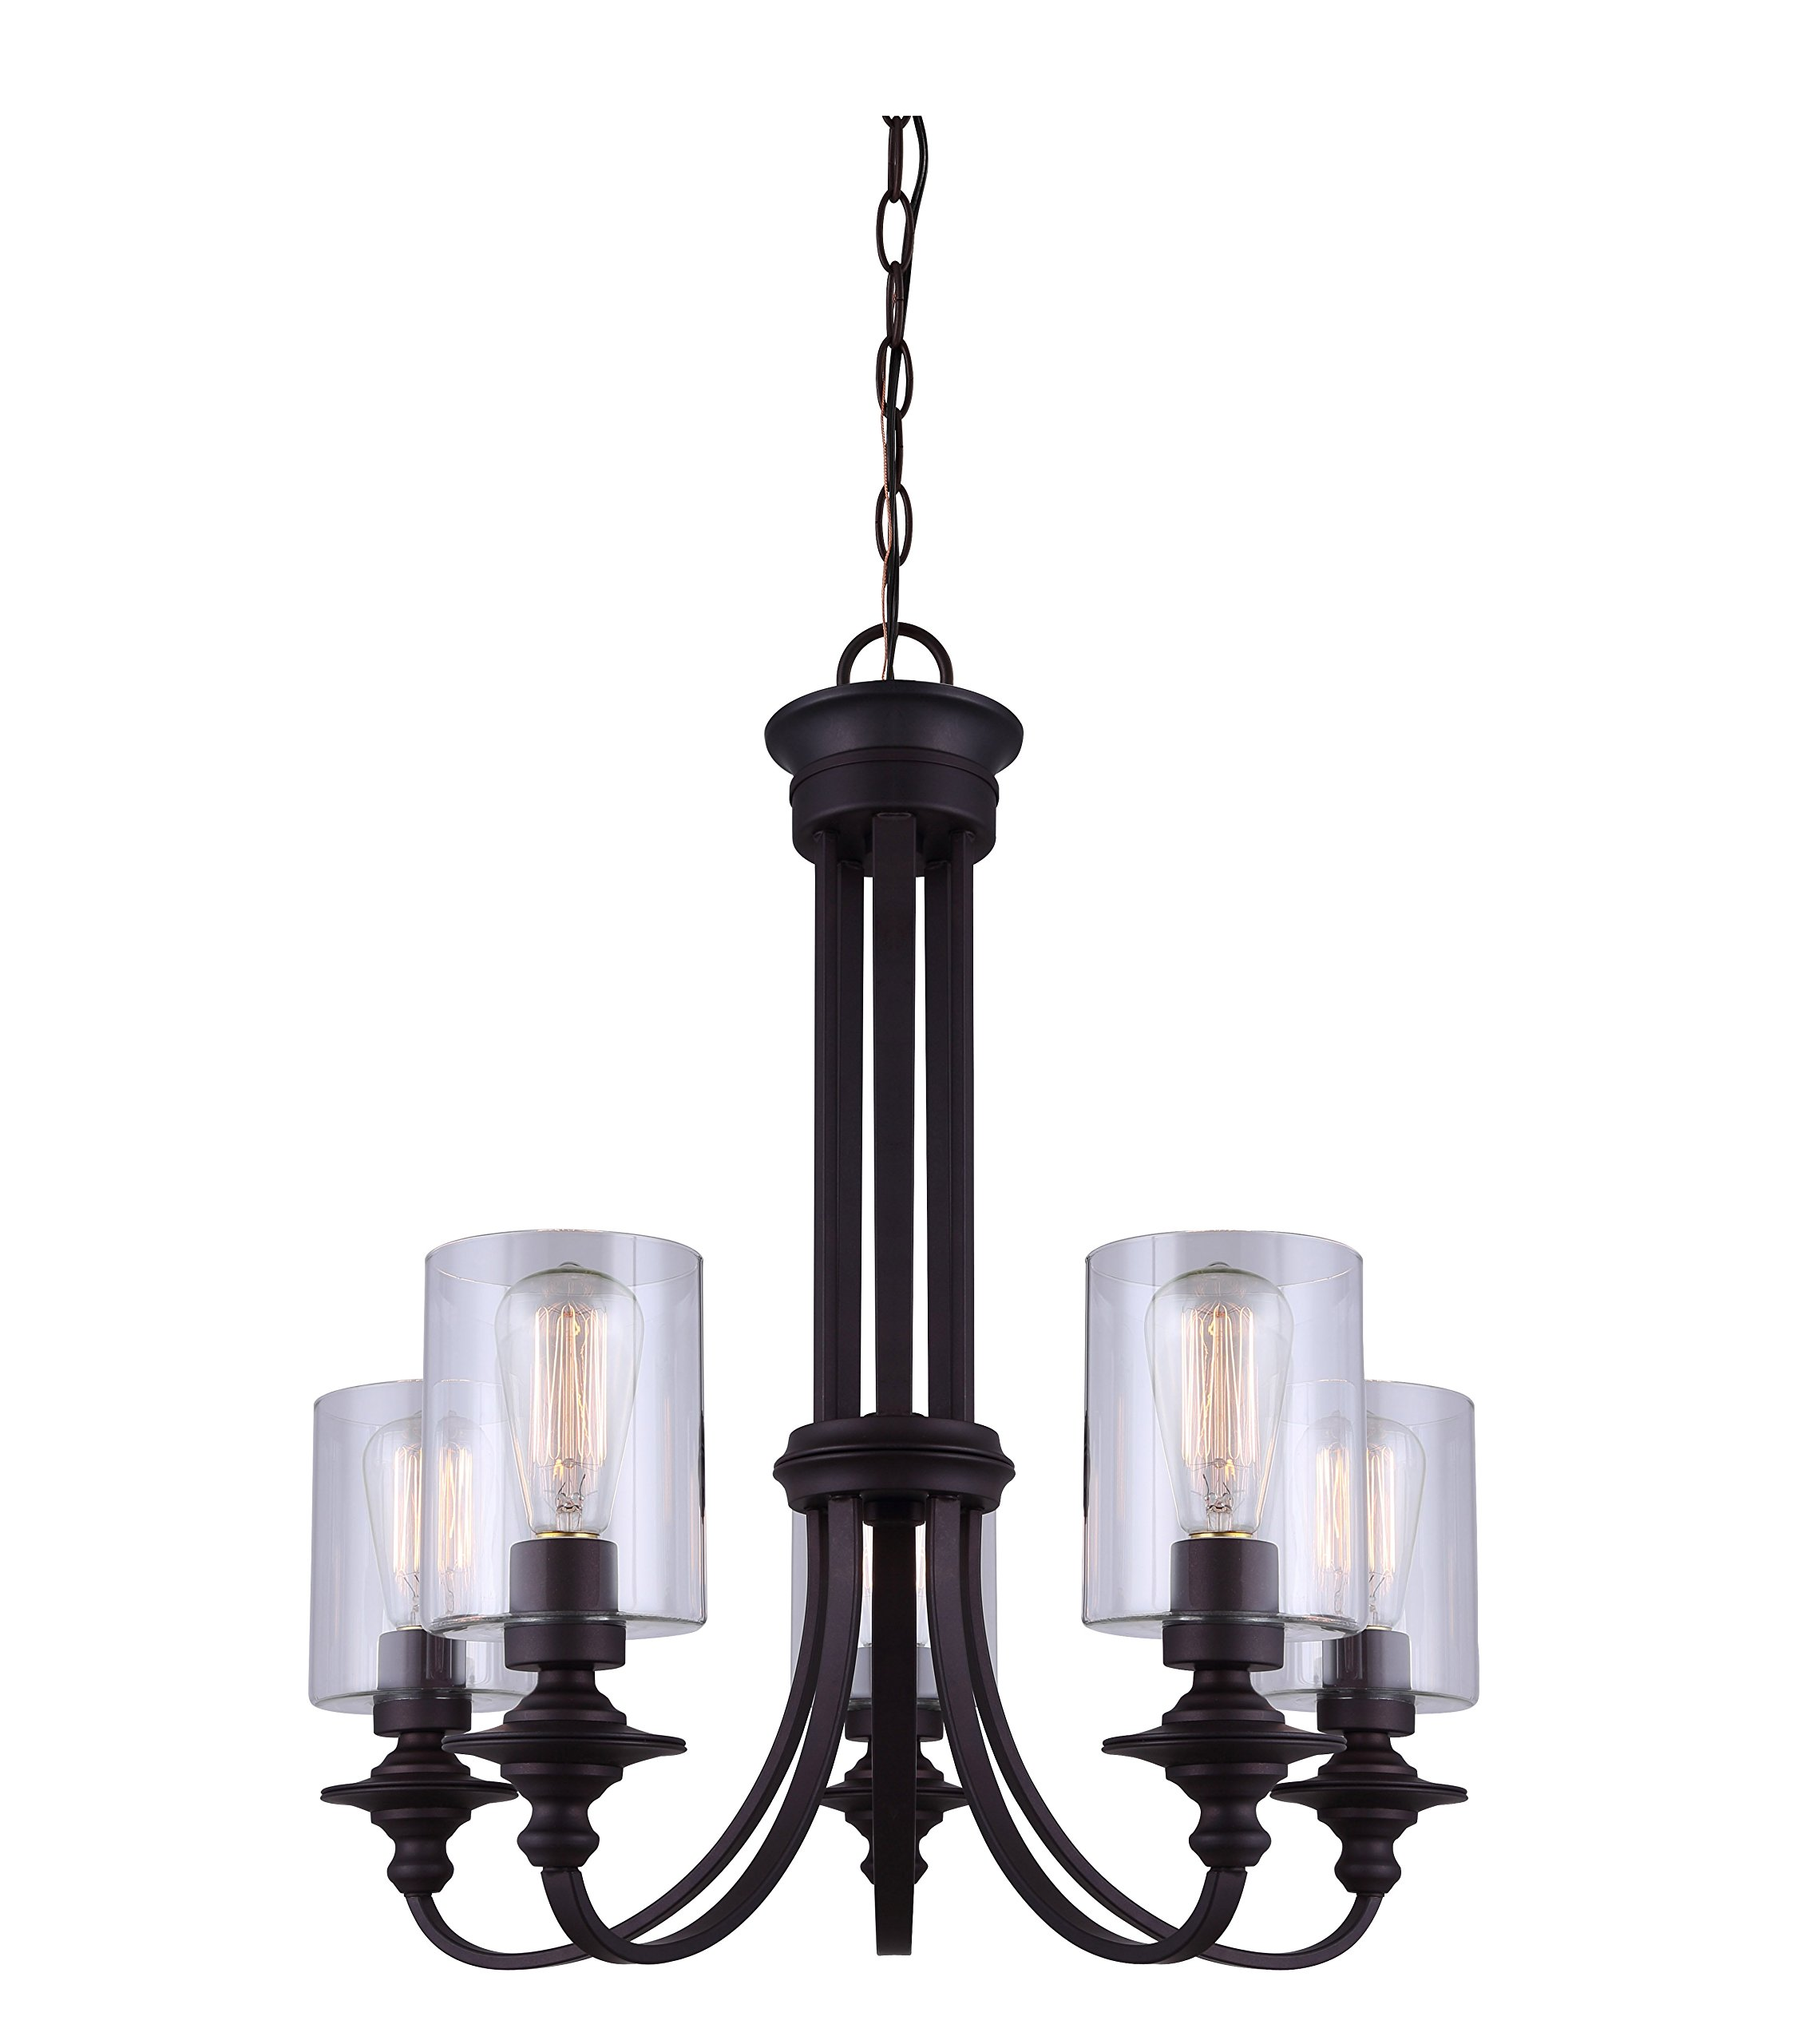 "CANARM ICH586A05ORB York 5 Light Chain Chandelier with Clear Glass, 25.59"" x 14.75"" x 14.17"", Oil Rubbed Bronze - Contemporary styling in Oil Rubbed Bronze finish Clear glass Uses 5 100W Type a bulbs (not included) looks great with vintage style bulbs. - kitchen-dining-room-decor, kitchen-dining-room, chandeliers-lighting - 81HPXecb6FL -"